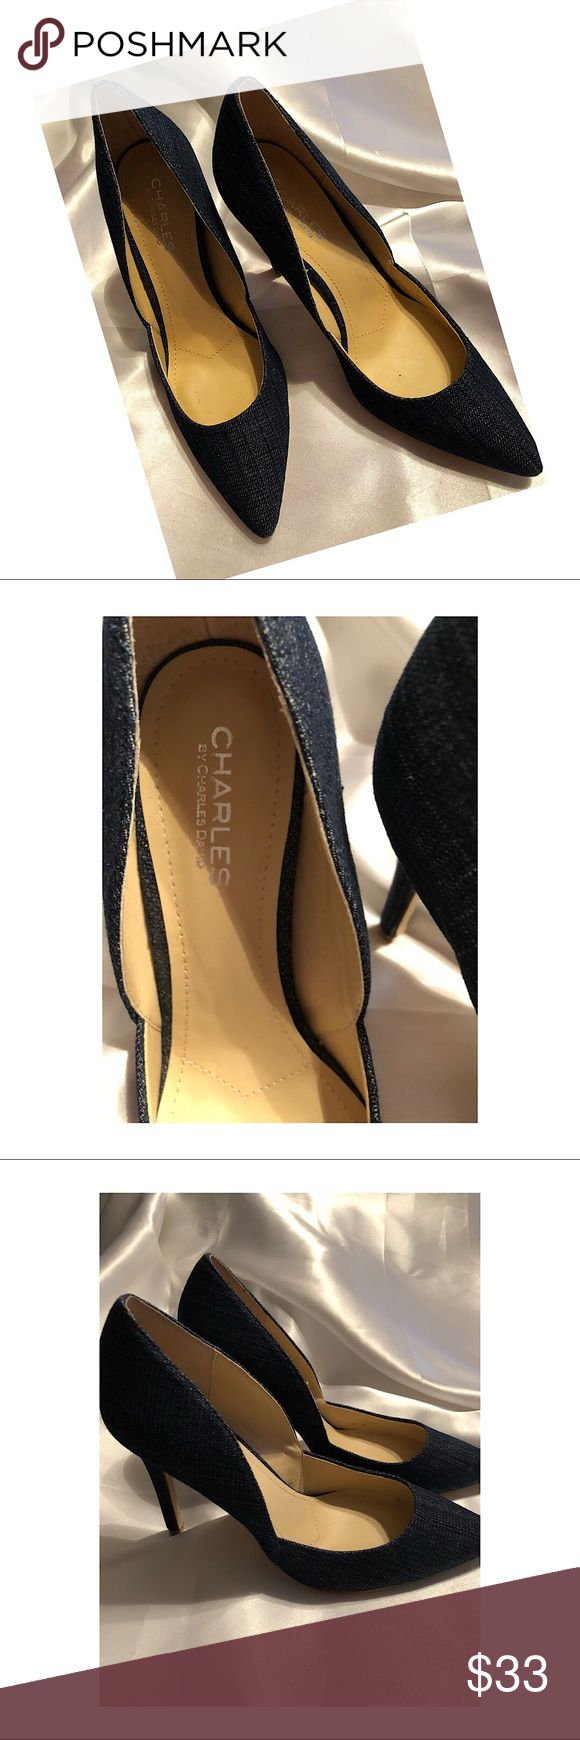 Charles David Denim Heels So cute with jeans. The tip of heel at toe point chipped but didn't affect the shoe and cannot be seen while wearing. See pic. Charles David Shoes Heels